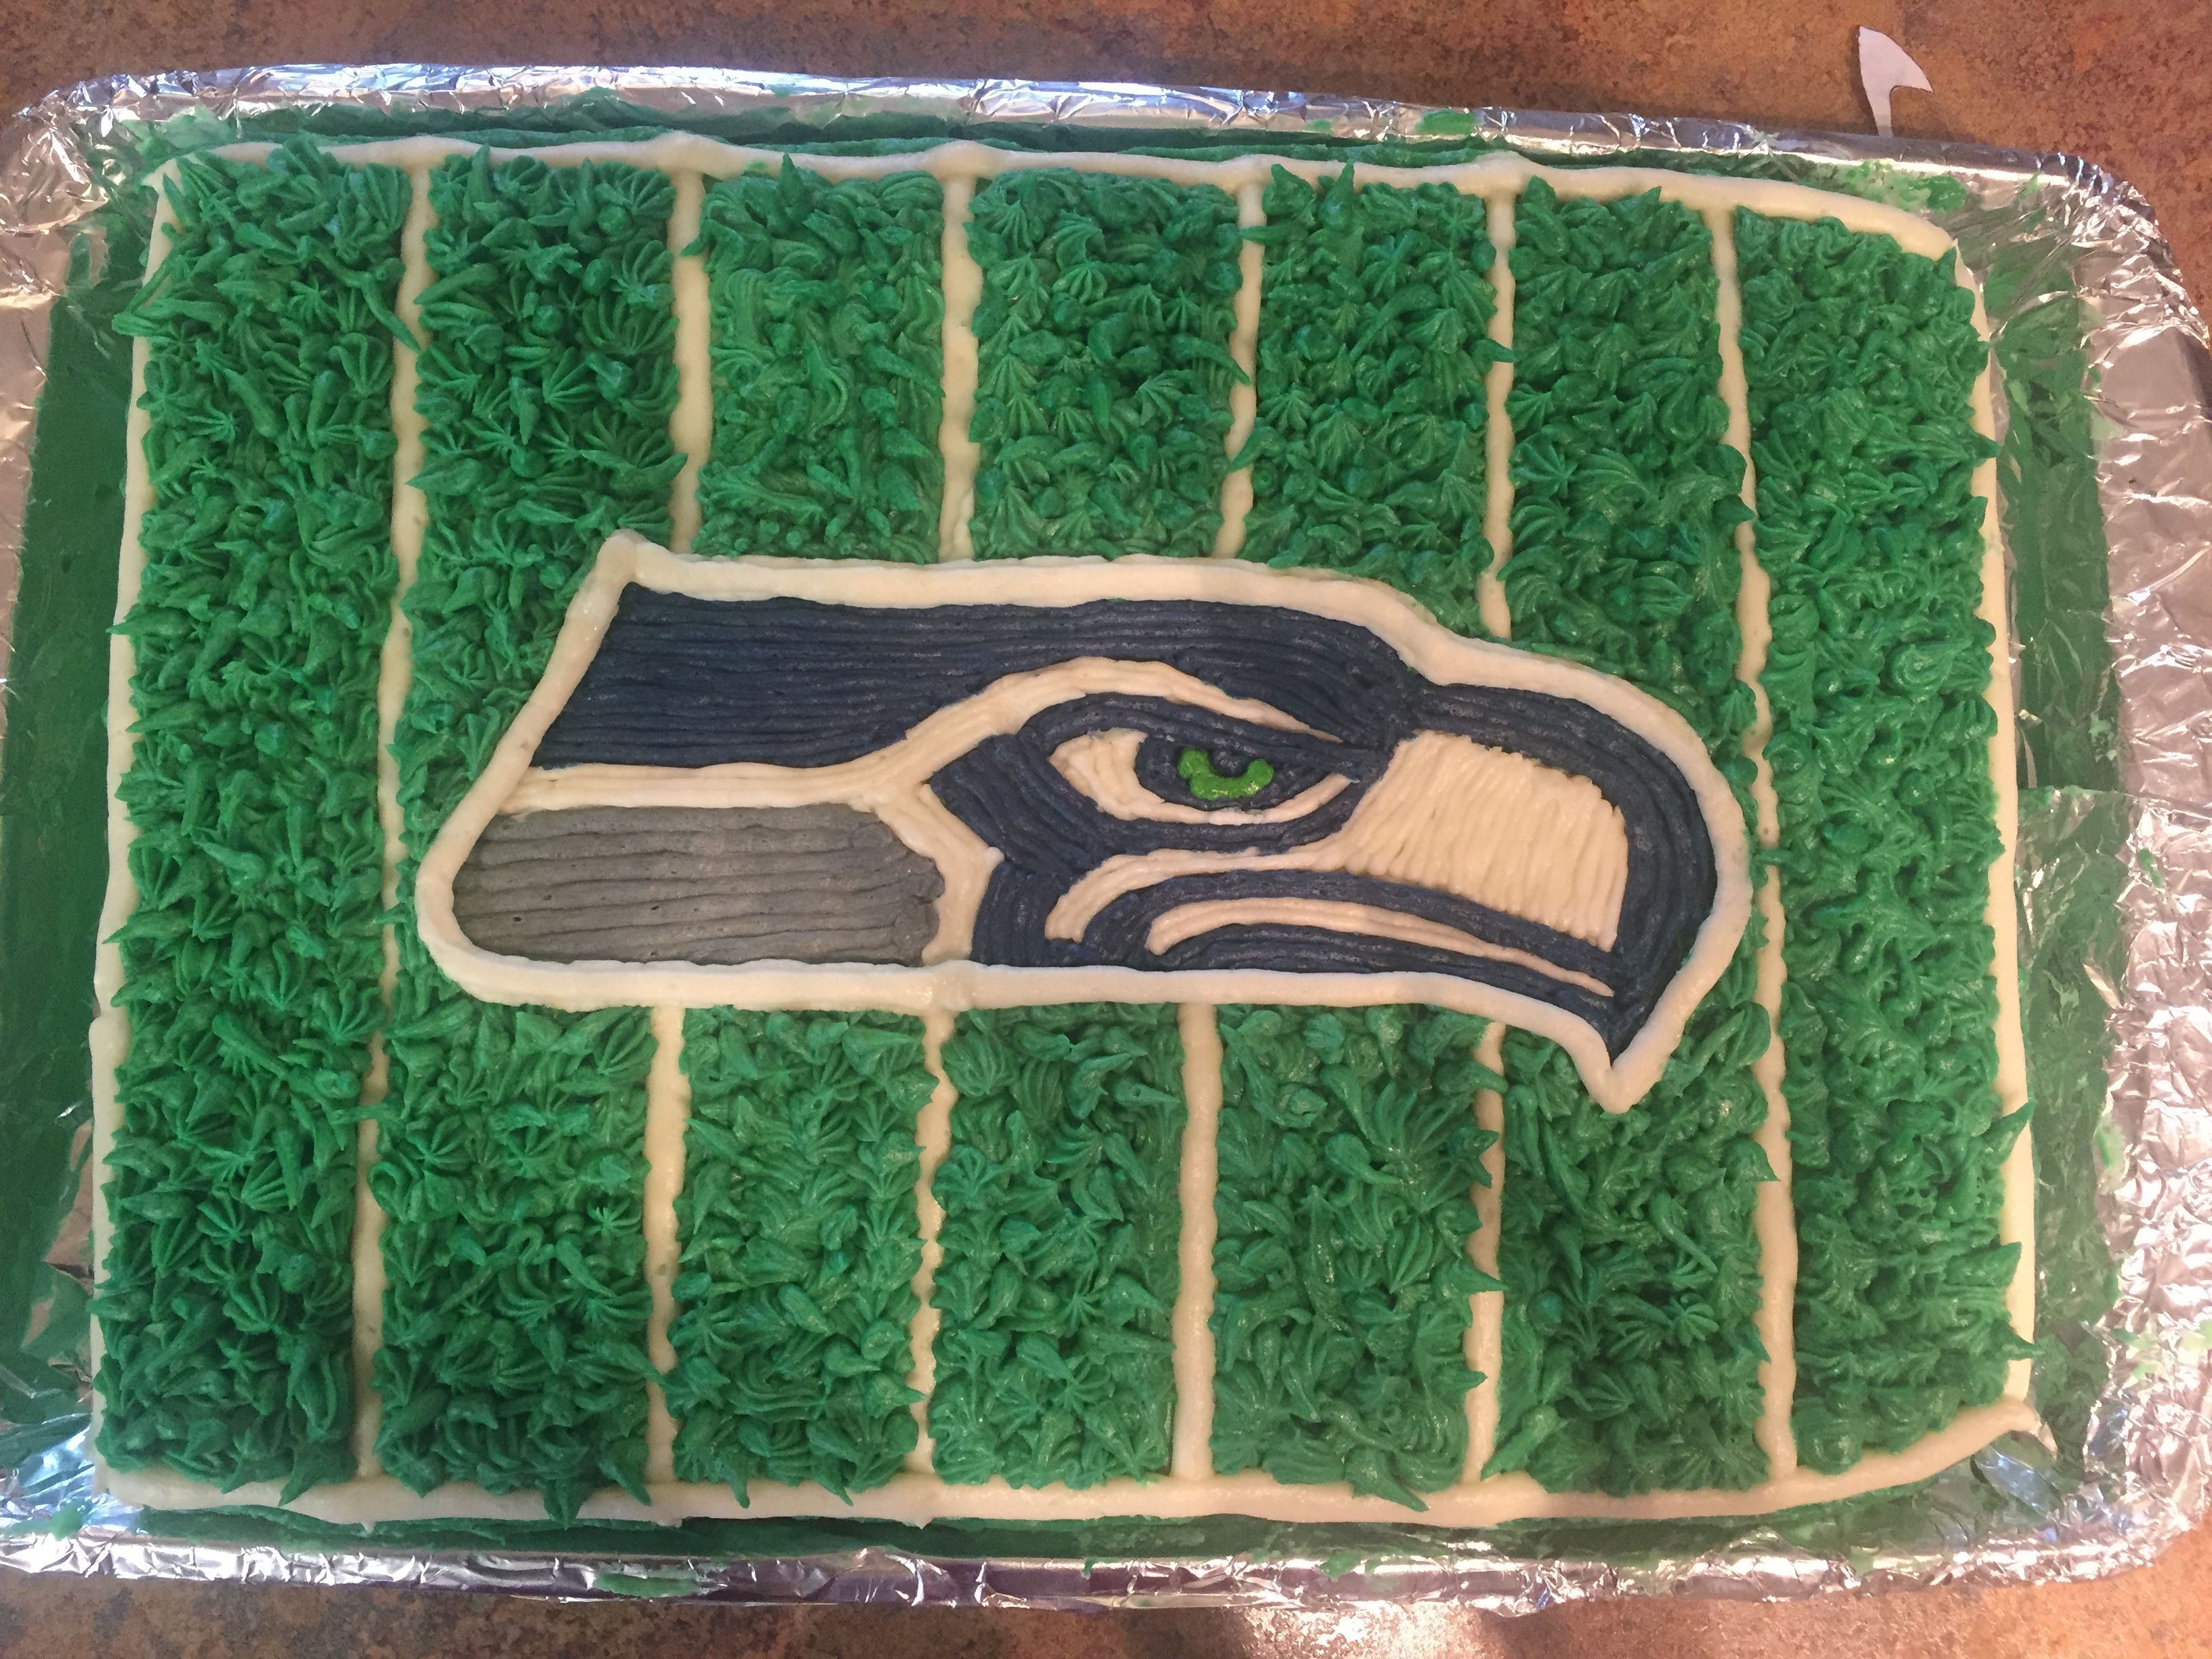 Seattle Seahawks cake with Buttercream icing.